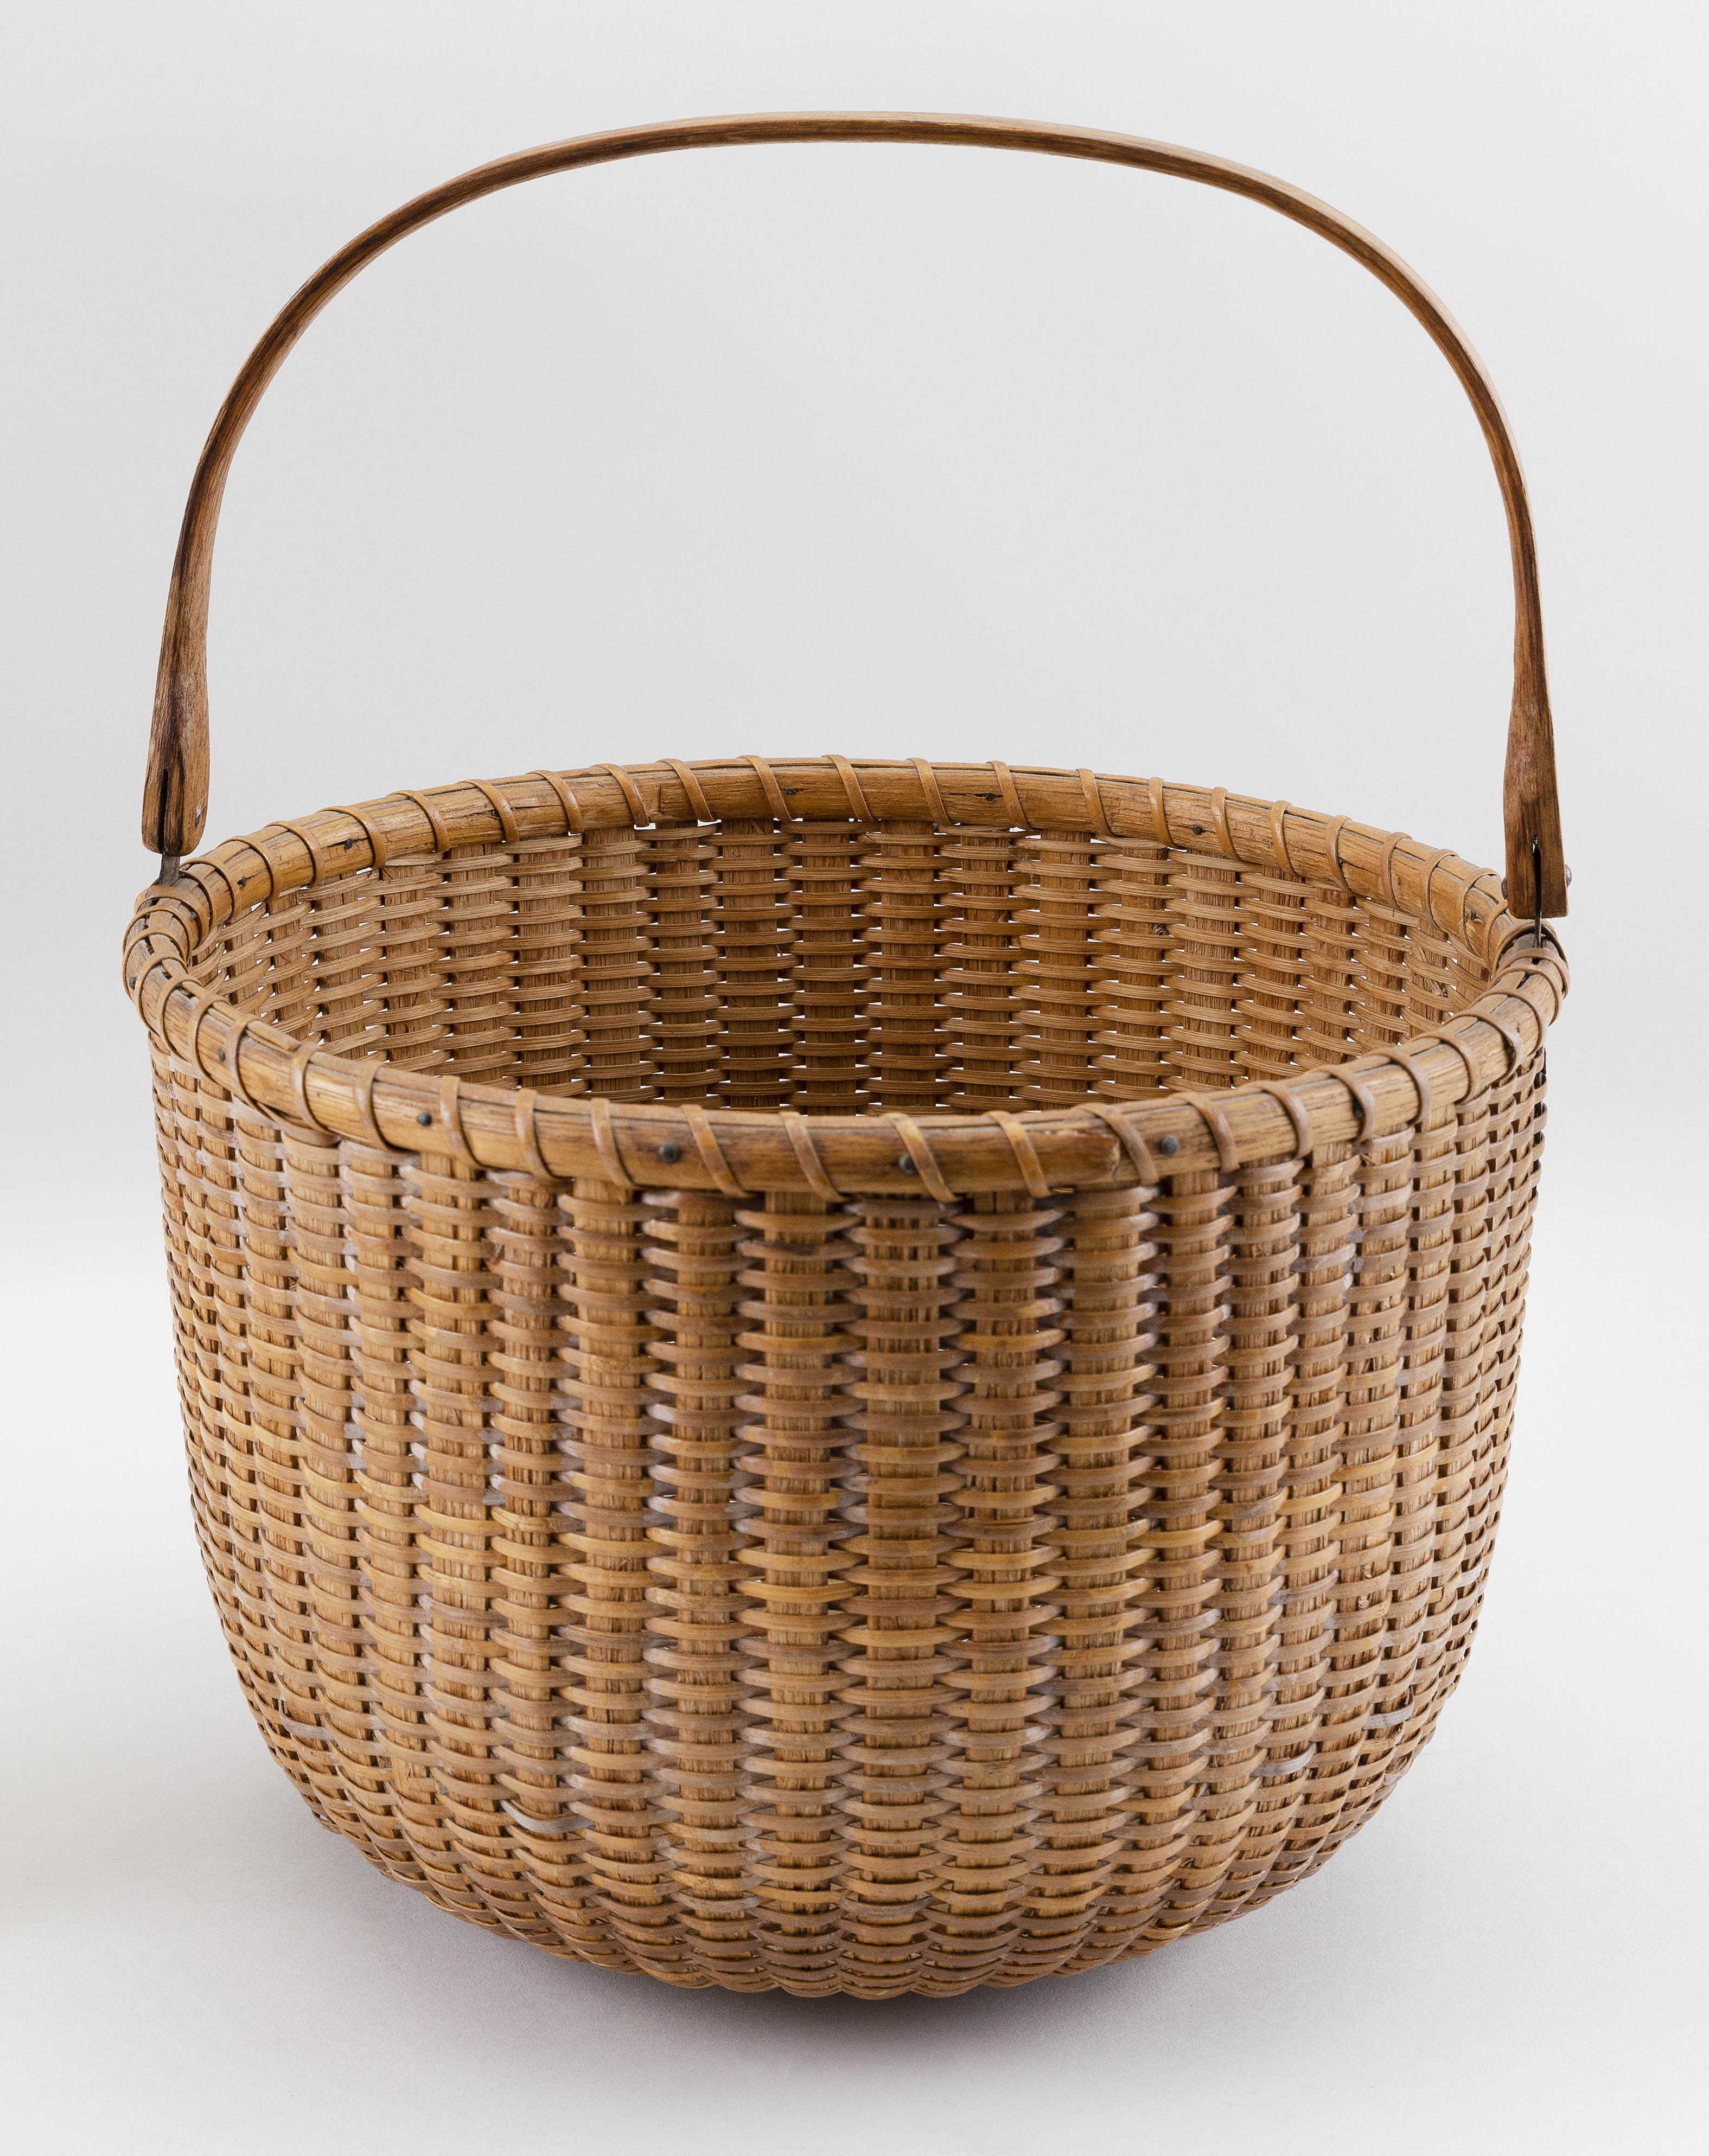 """ROUND NANTUCKET BASKET WITH SWING HANDLE 20th Century Diameter 10.5"""". Height 7.5"""" (not including handle)."""